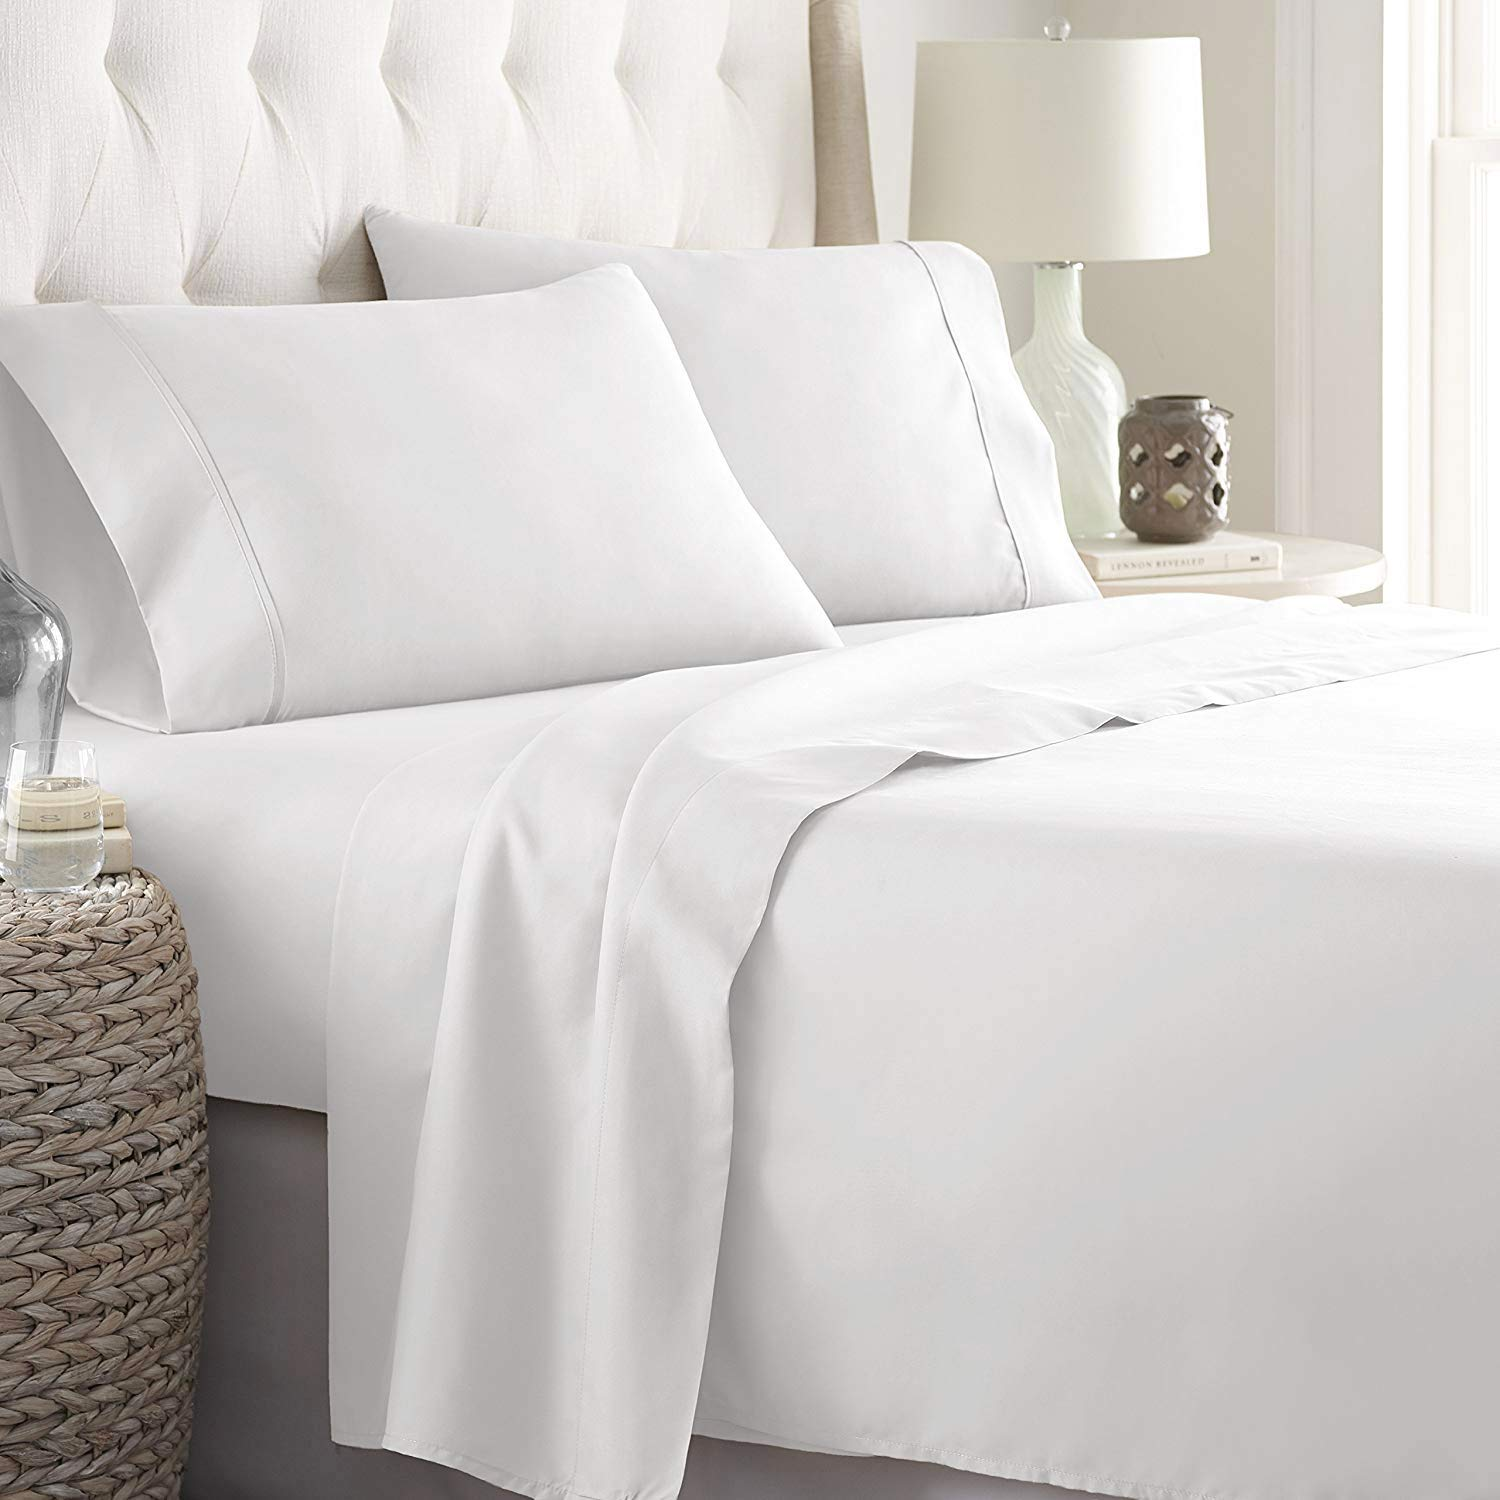 Lower Price with Luxury 100% Egyptian Cotton Fitted Bed Sheet 400 Thread Count Single Double King Pure White And Translucent Bedding